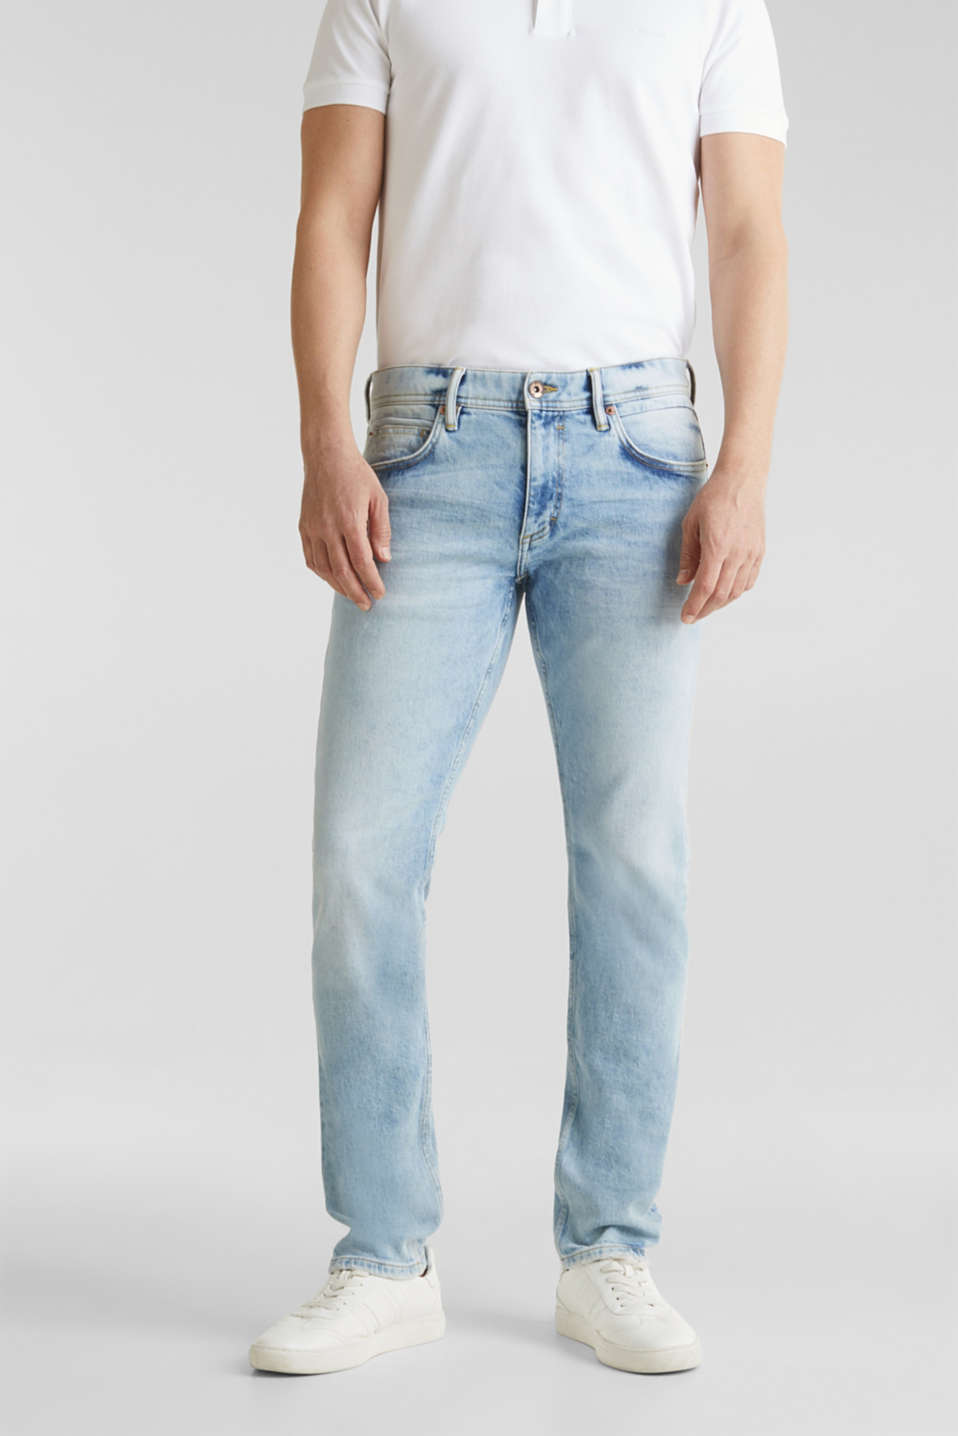 Esprit - Super stretch jeans with a stone wash